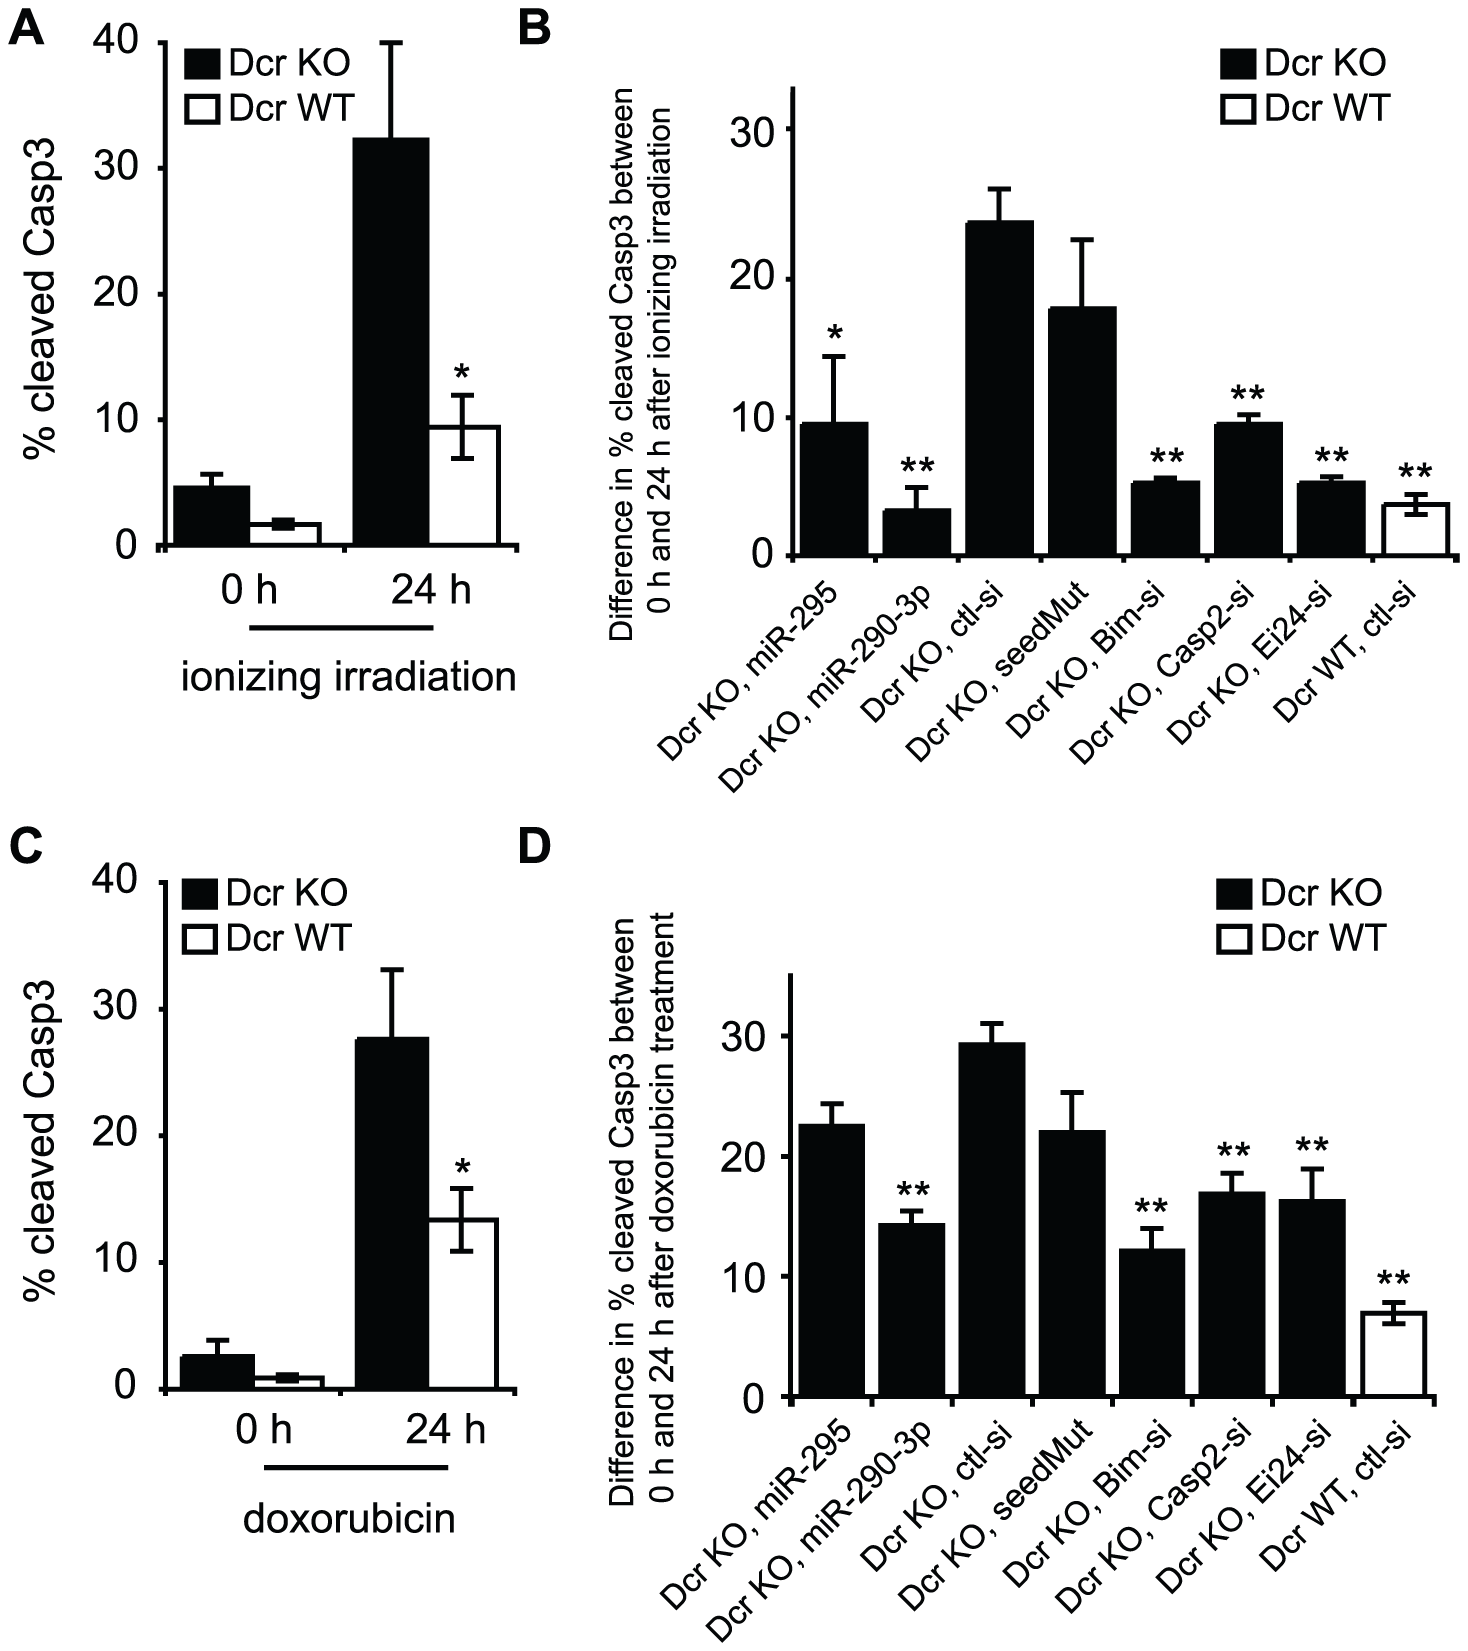 Downregulation of Casp2 and Ei24 partially rescues the increased apoptotic rate of Dcr KO cells following genotoxic stress.